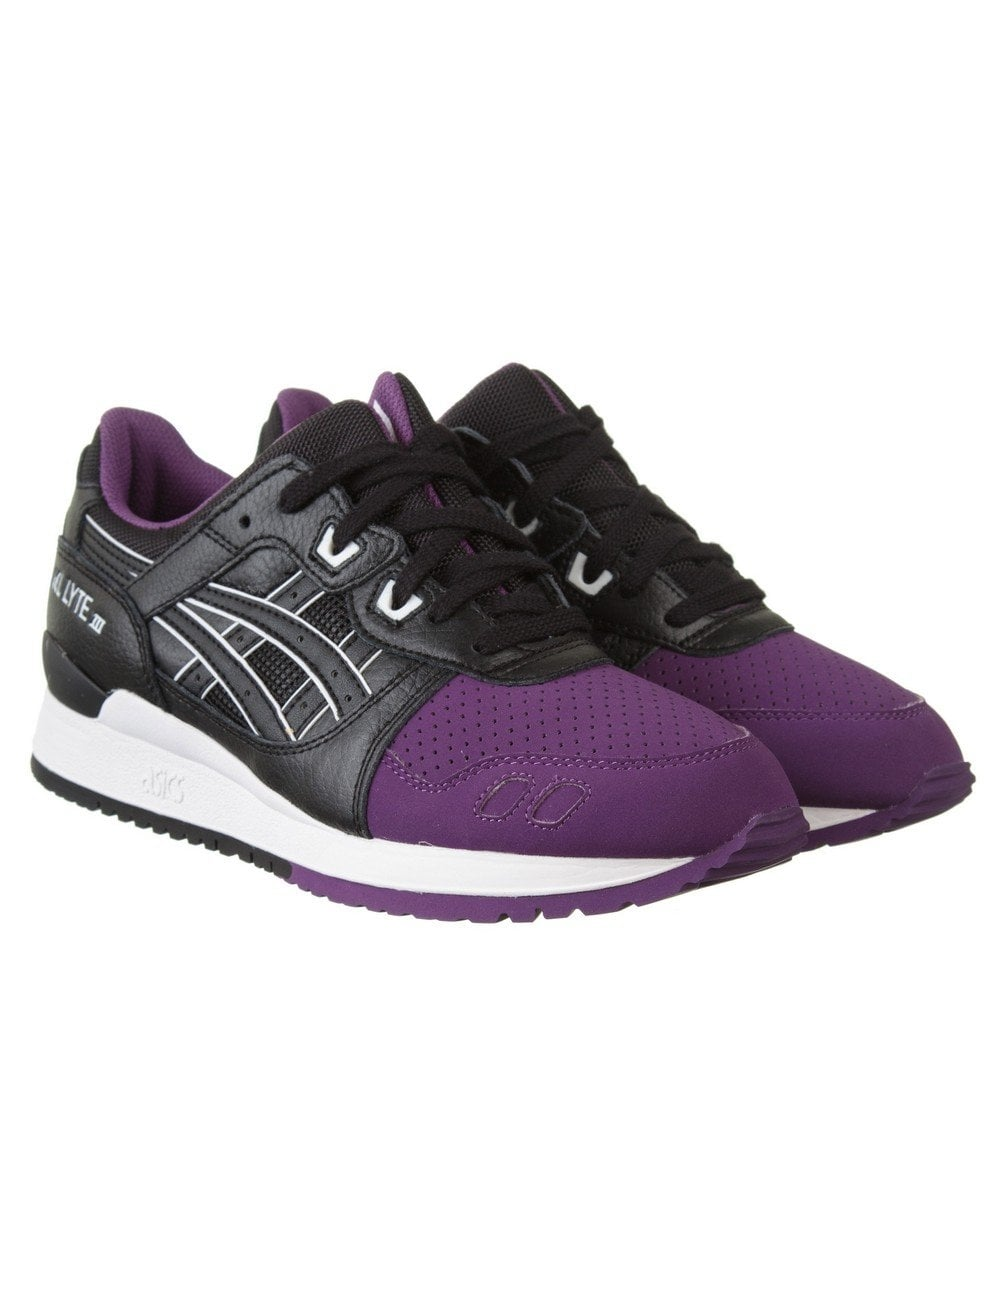 on sale 0effc f2672 Gel Lyte III Trainers - Purple/Black (50/50 Pack)